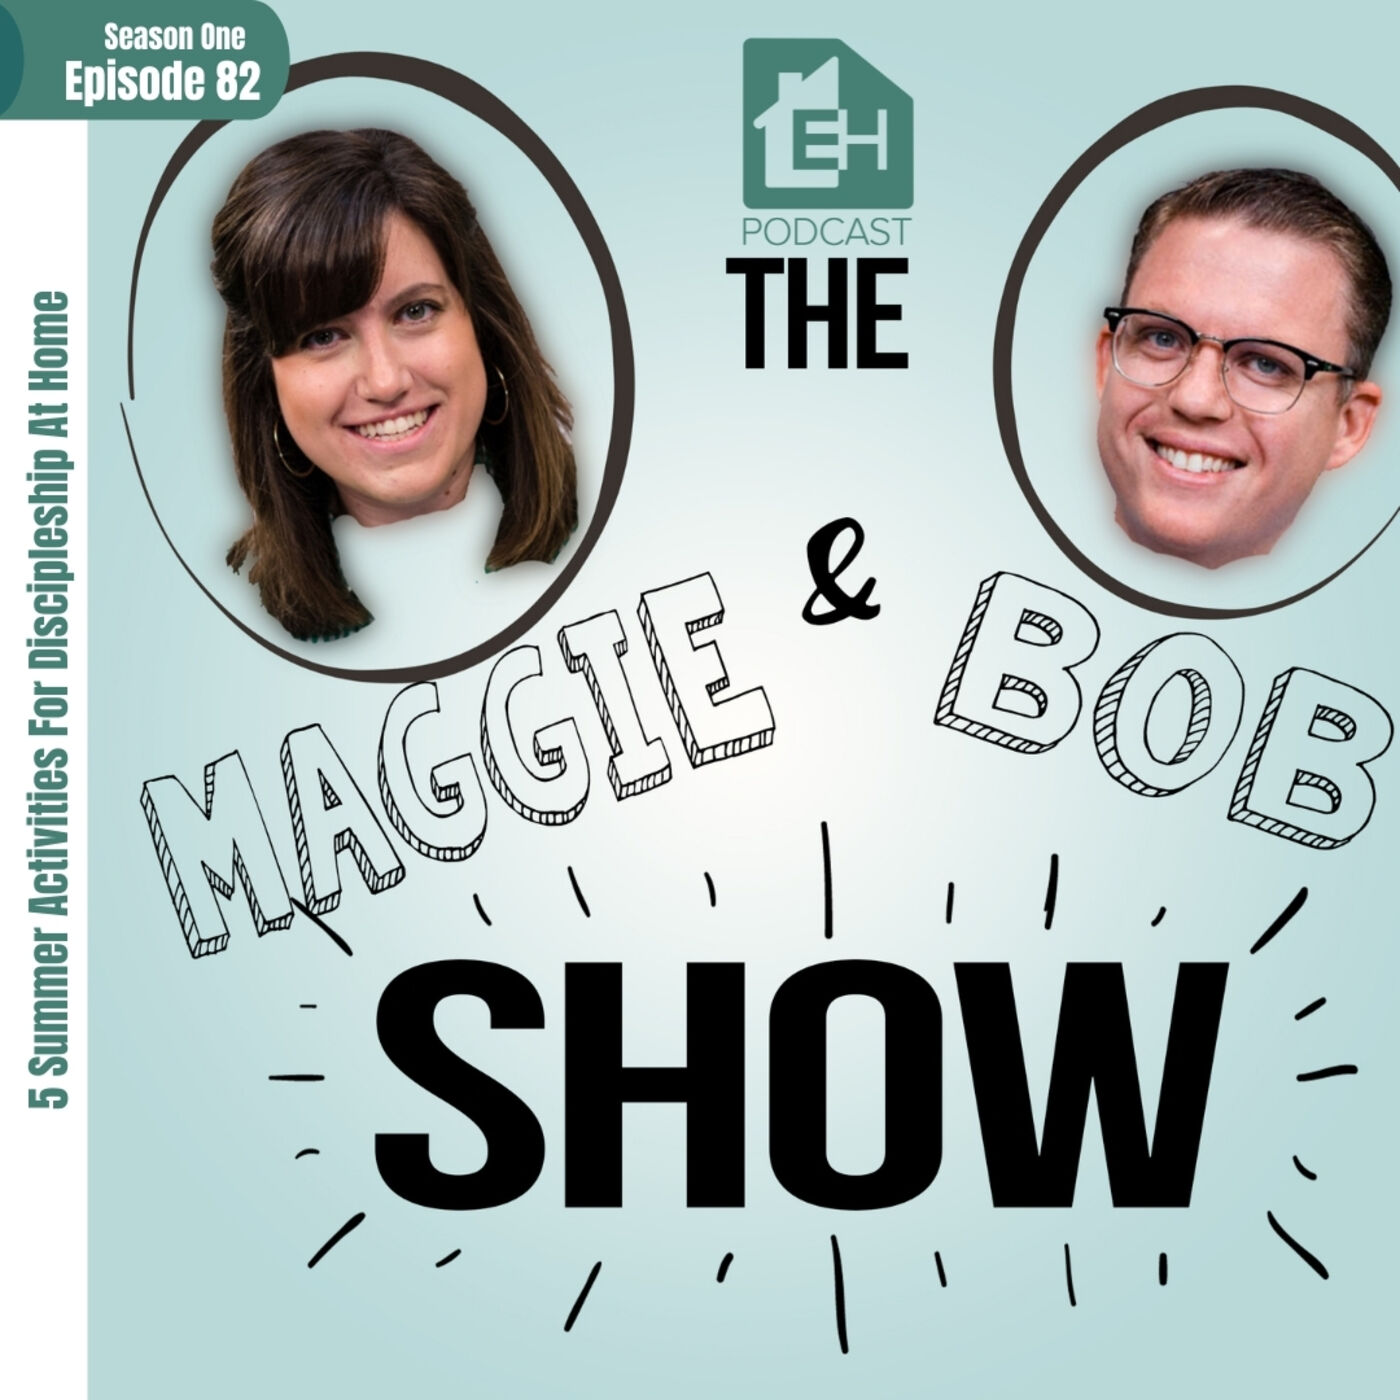 Maggie and Bob Show: 5 Summer Activities